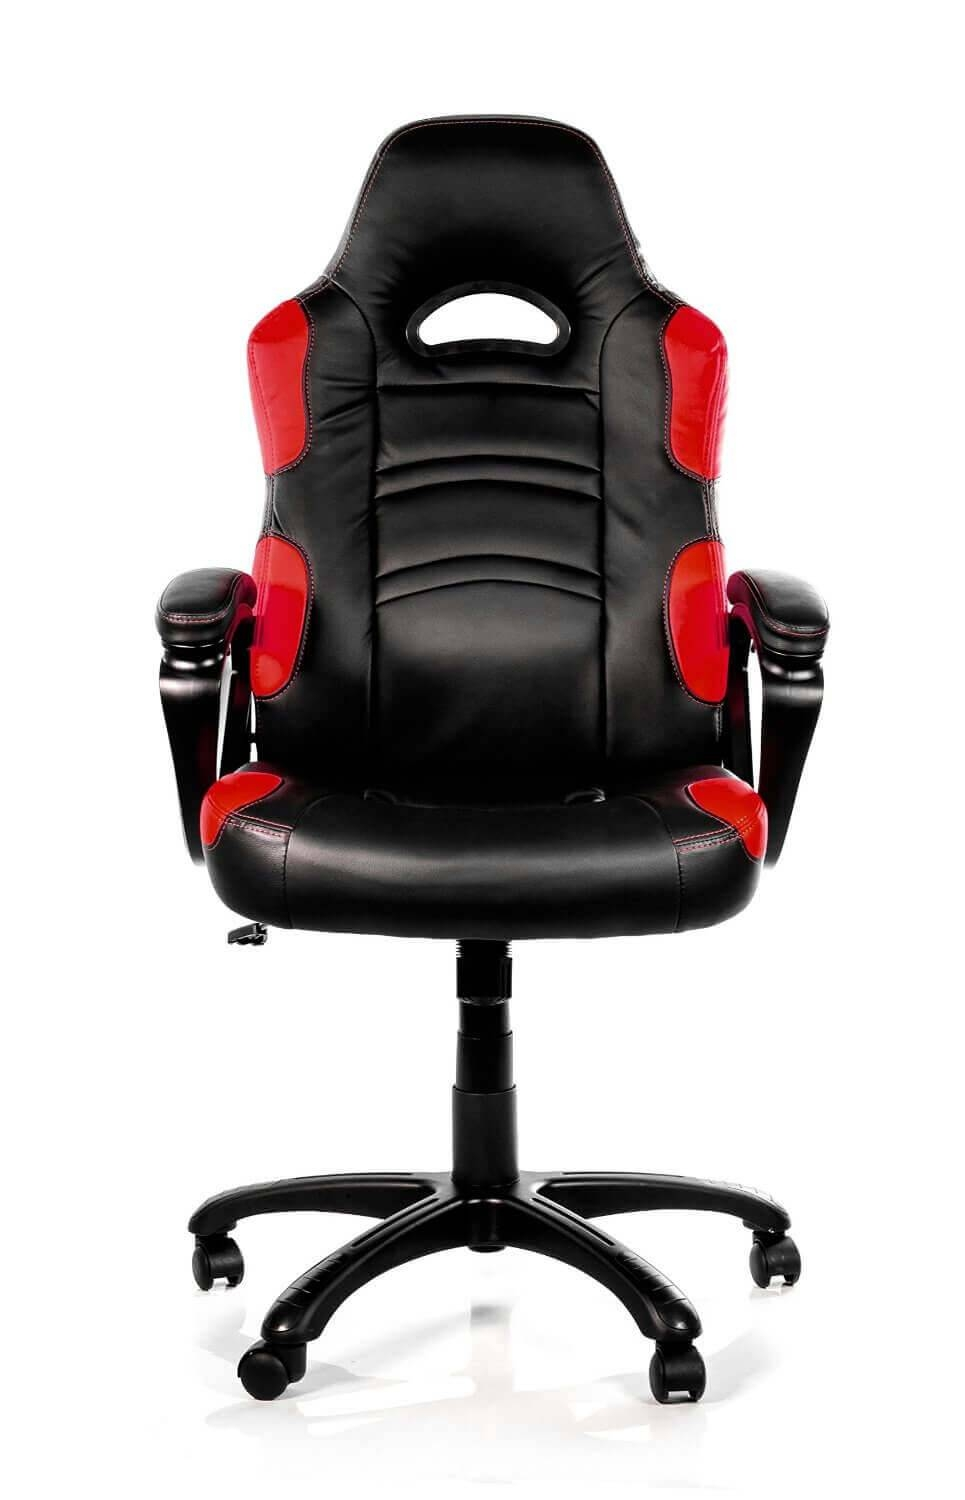 Best Gaming Chairs (Sep. 2017) - Ultimate Game Chair List pertaining to Gaming Sofa Chairs (Image 4 of 15)